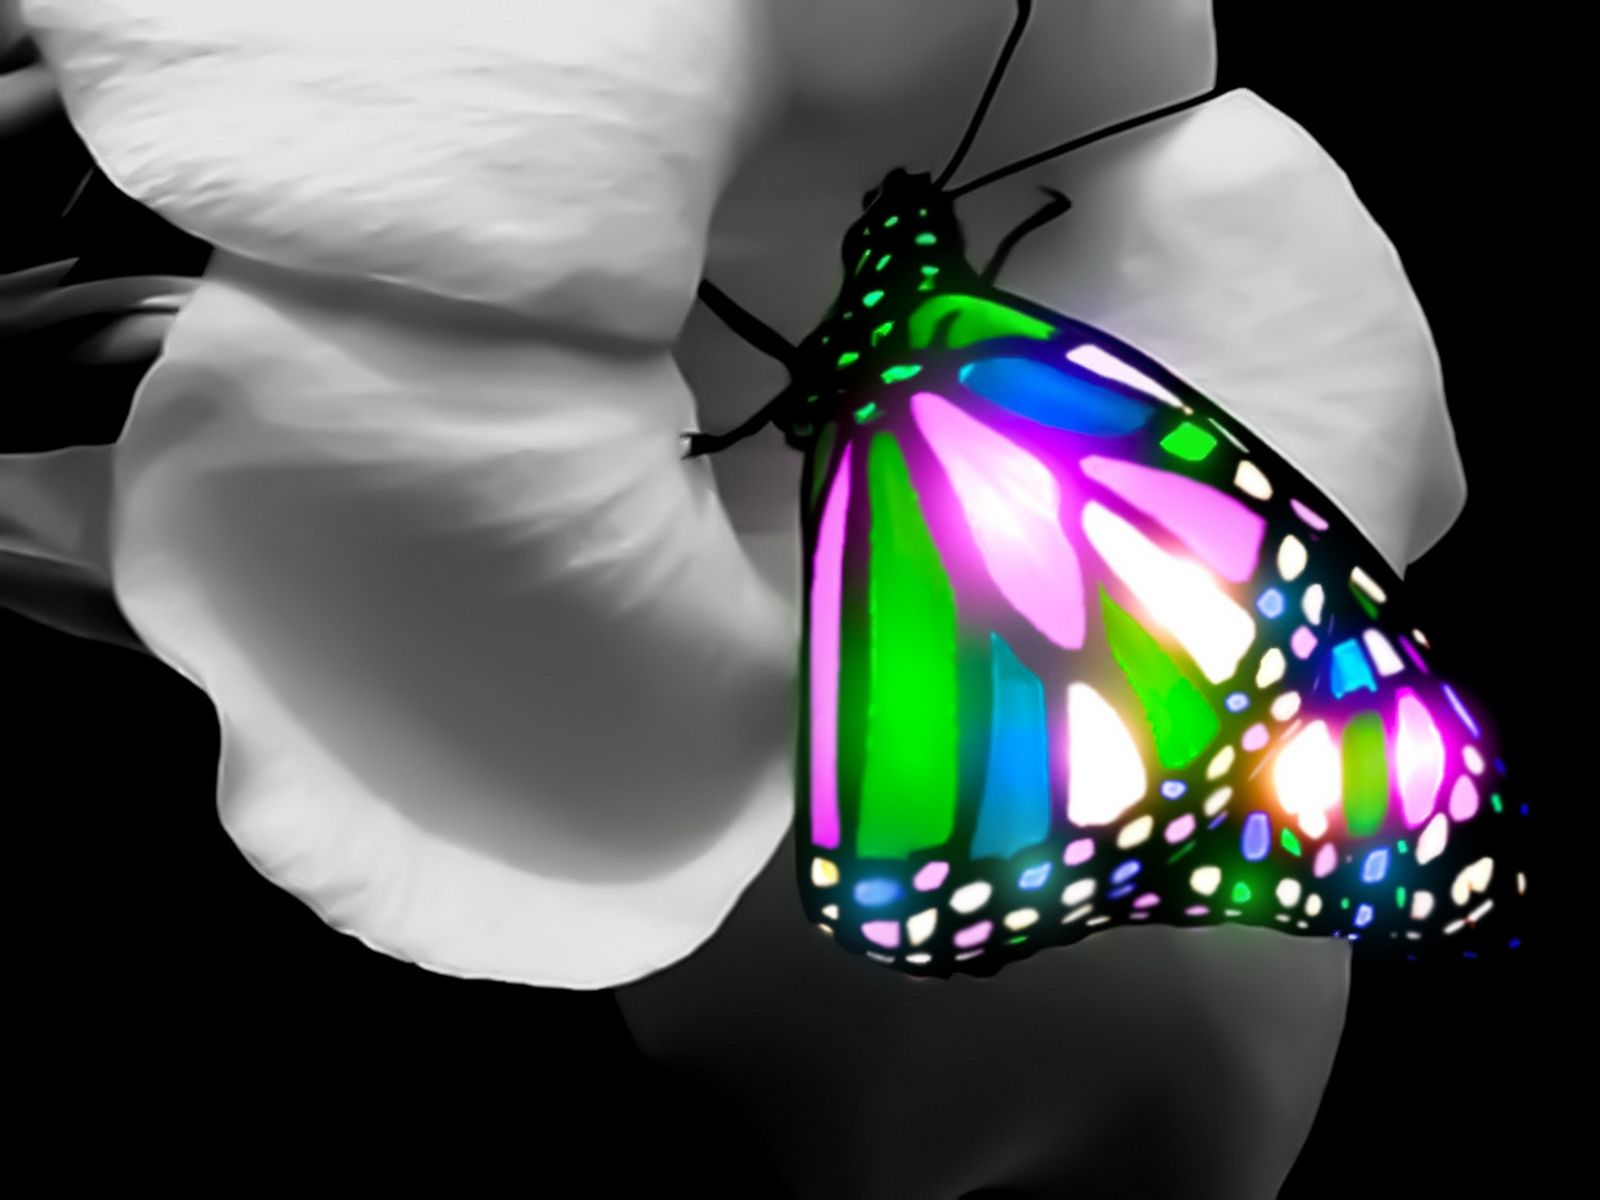 butterfly wallpaper 3d 1600a—1200 121281 hd wallpaper res